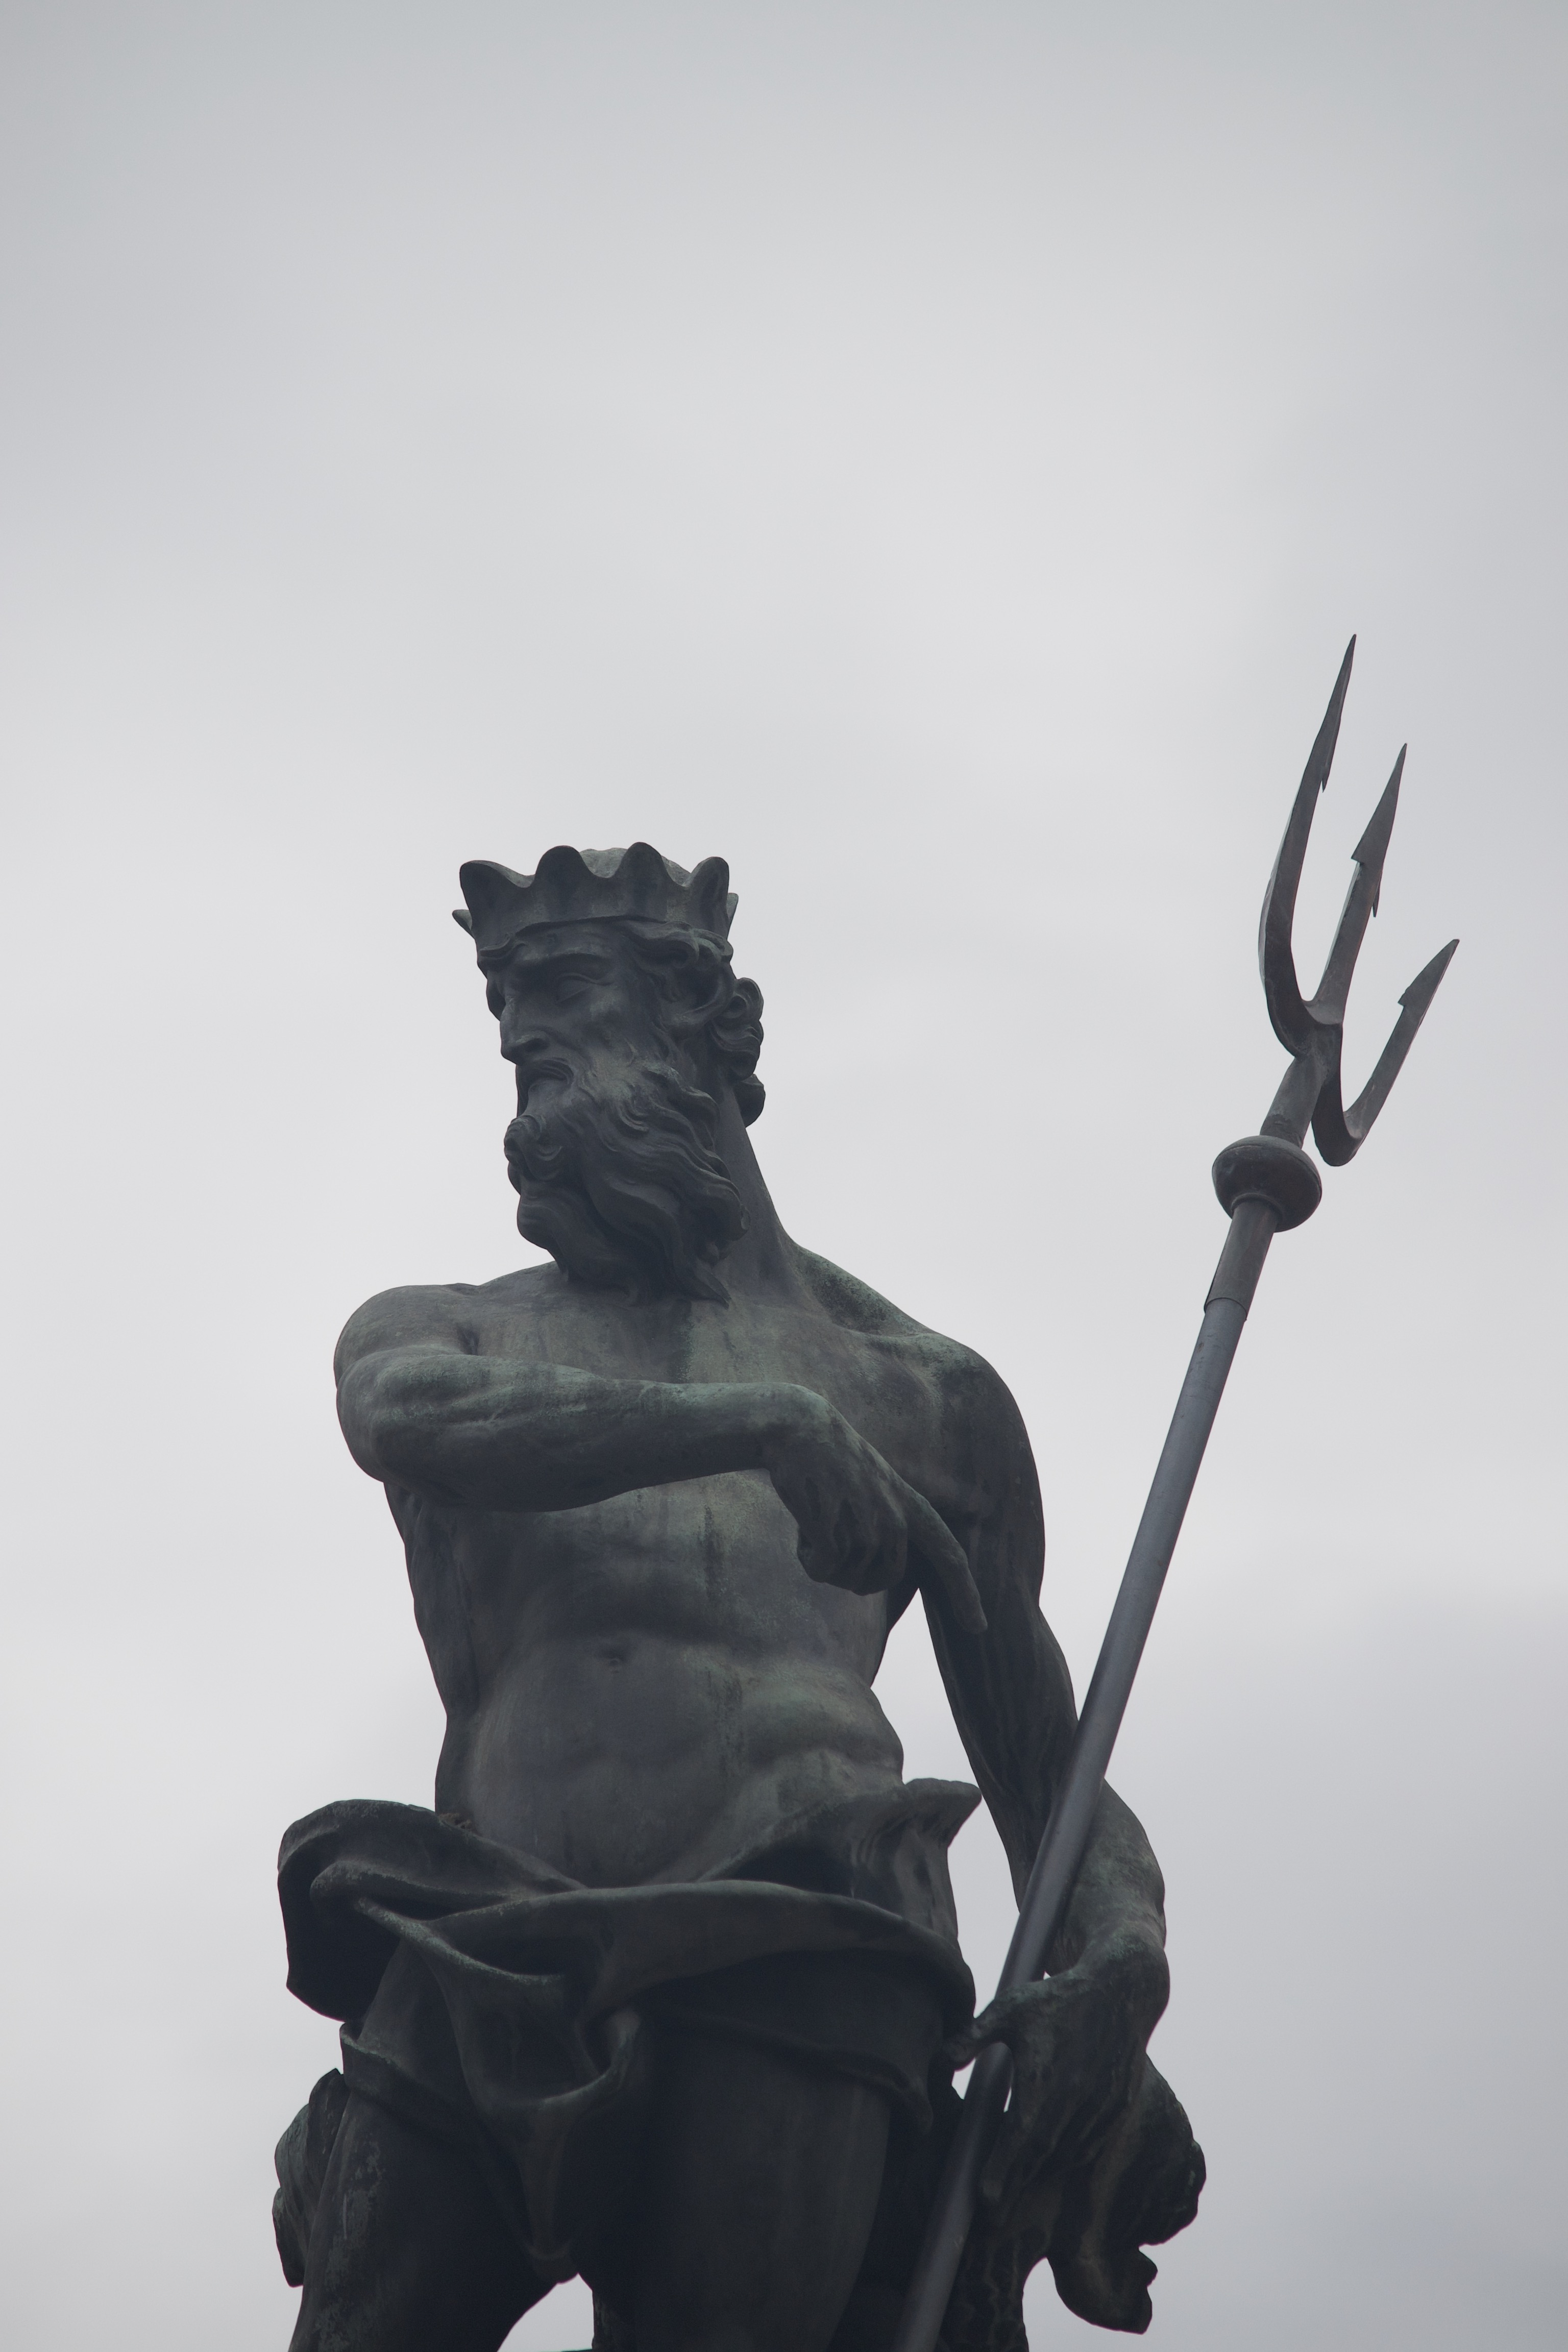 A shirtless, crowned, metal figure points with his right hand to the trident held by his left.